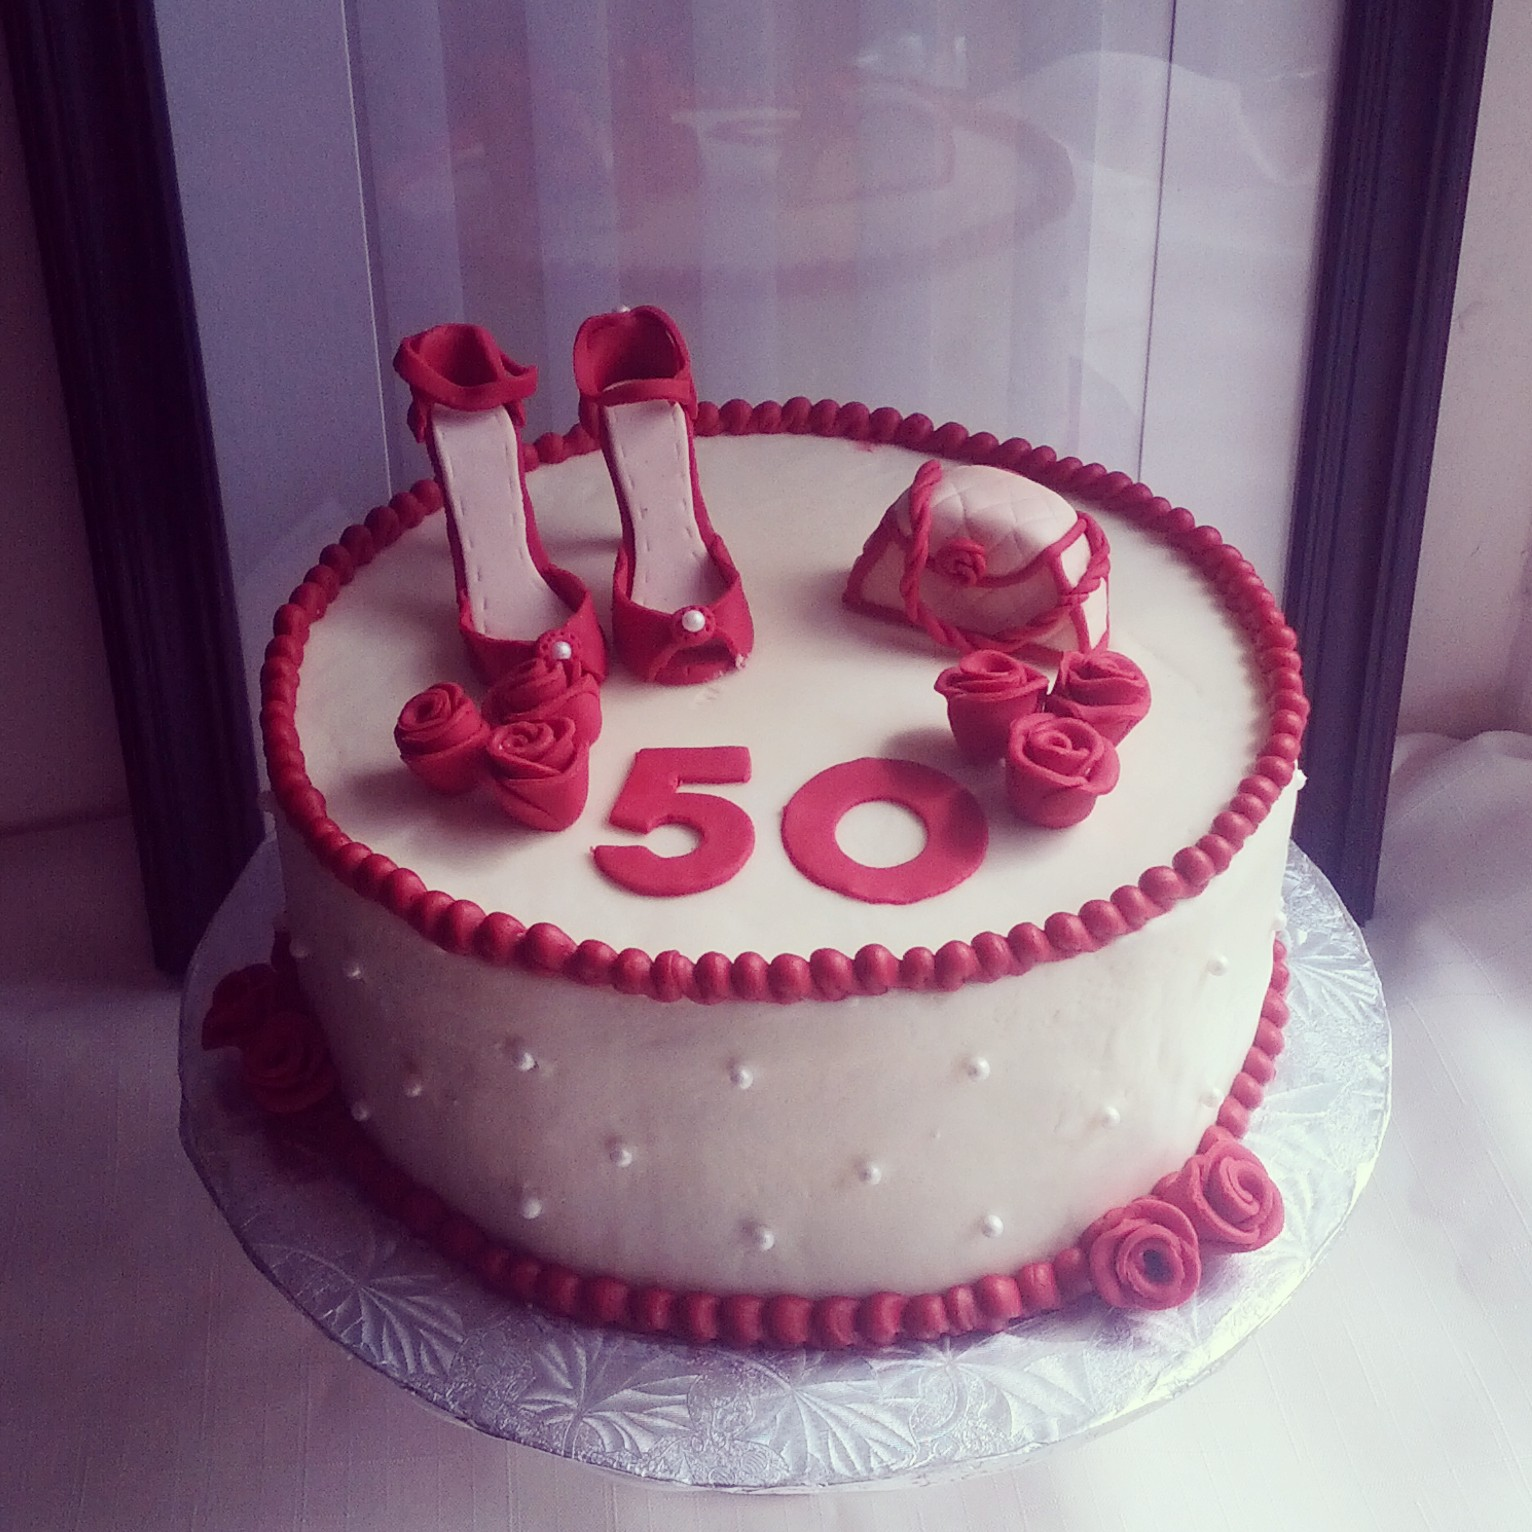 Second Generation Cake Design Red Shoes Purse 50th Birthday Cake